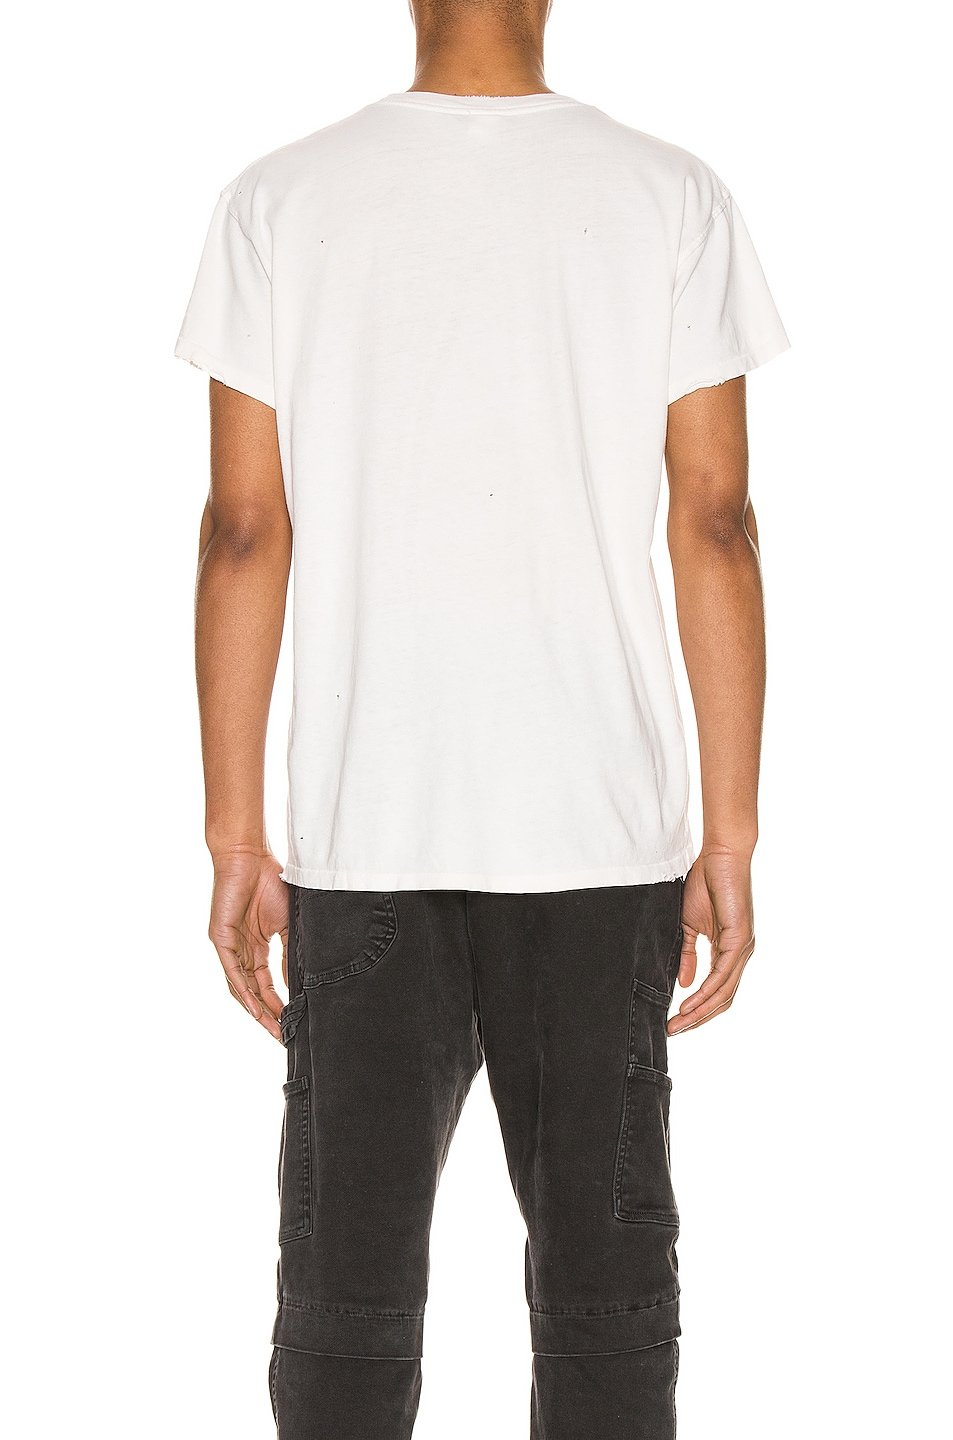 Image 4 of Madeworn The Stones Crew Tee in Off White